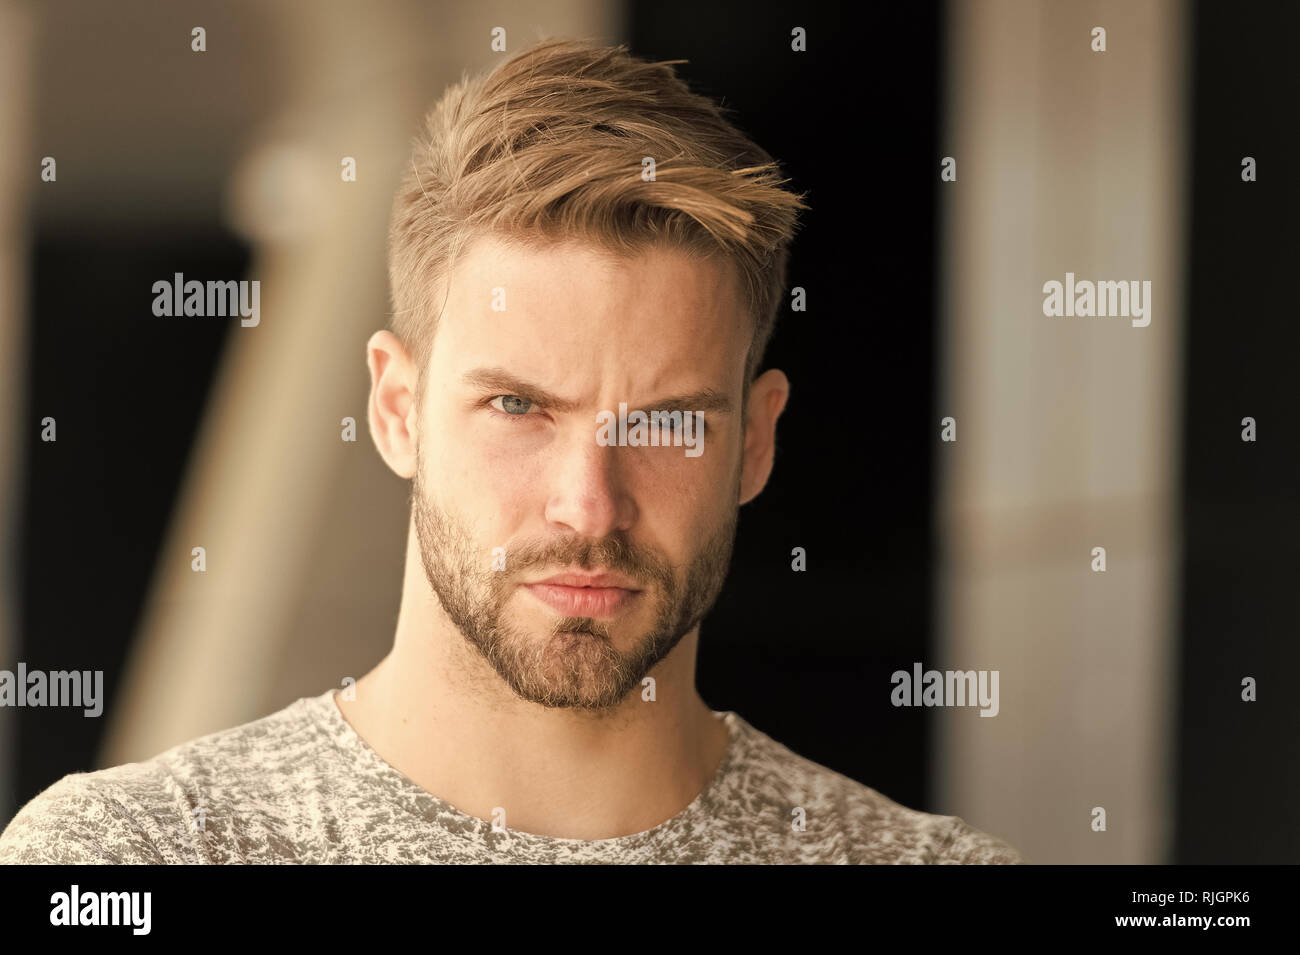 Metrosexual Concept Man Beard Unshaven Guy Looks Handsome And Cool Handsome In Style Guy Bearded Attractive Cares About Appearance Man Bristle Serious Strict Face Black Background Close Up Stock Photo Alamy